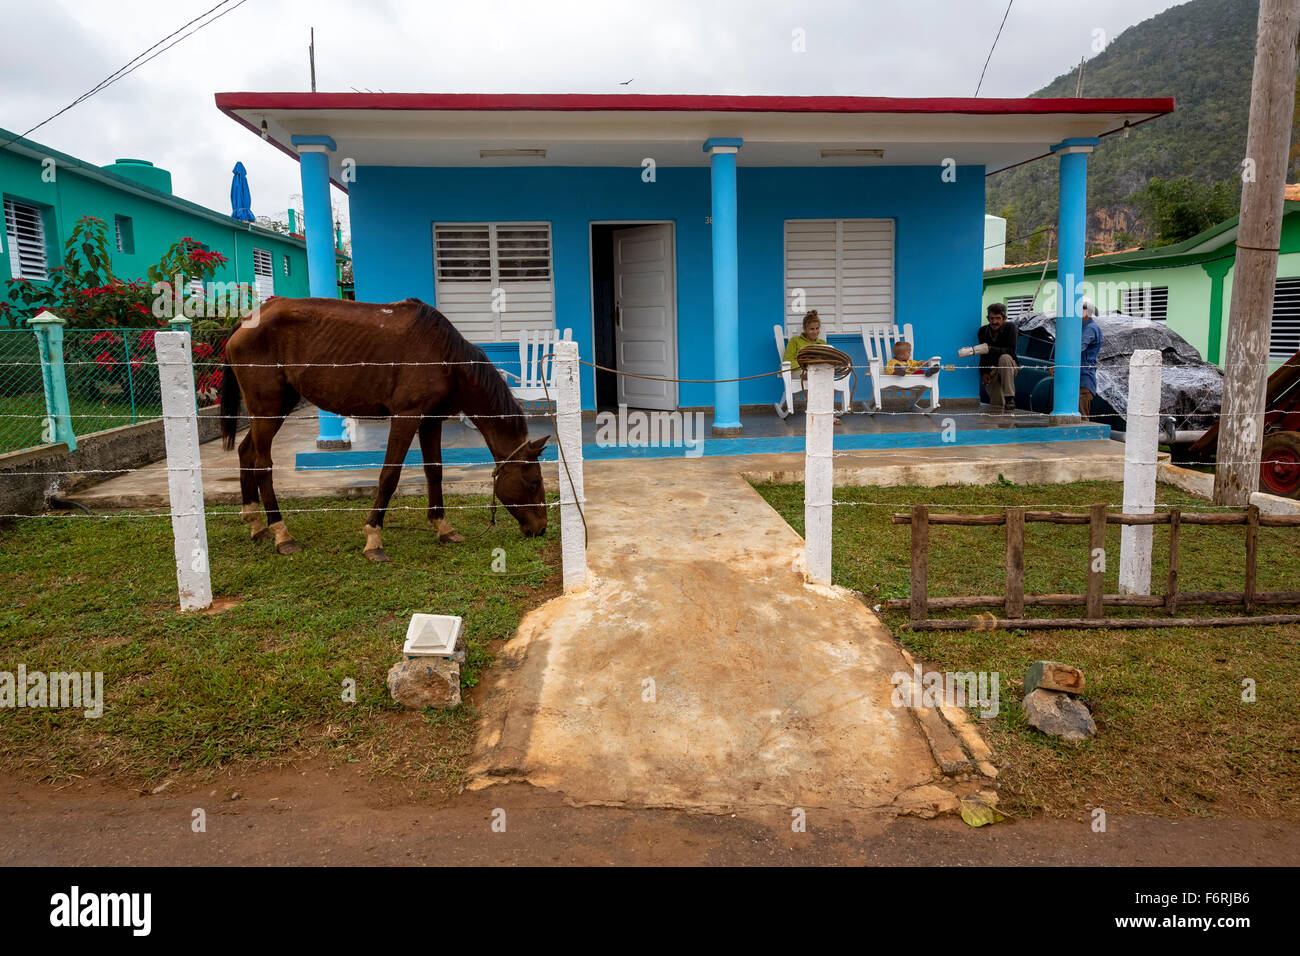 blue private home with a horse in the front yard, Viñales, Cuba, Pinar del Río, Cuba - Stock Image